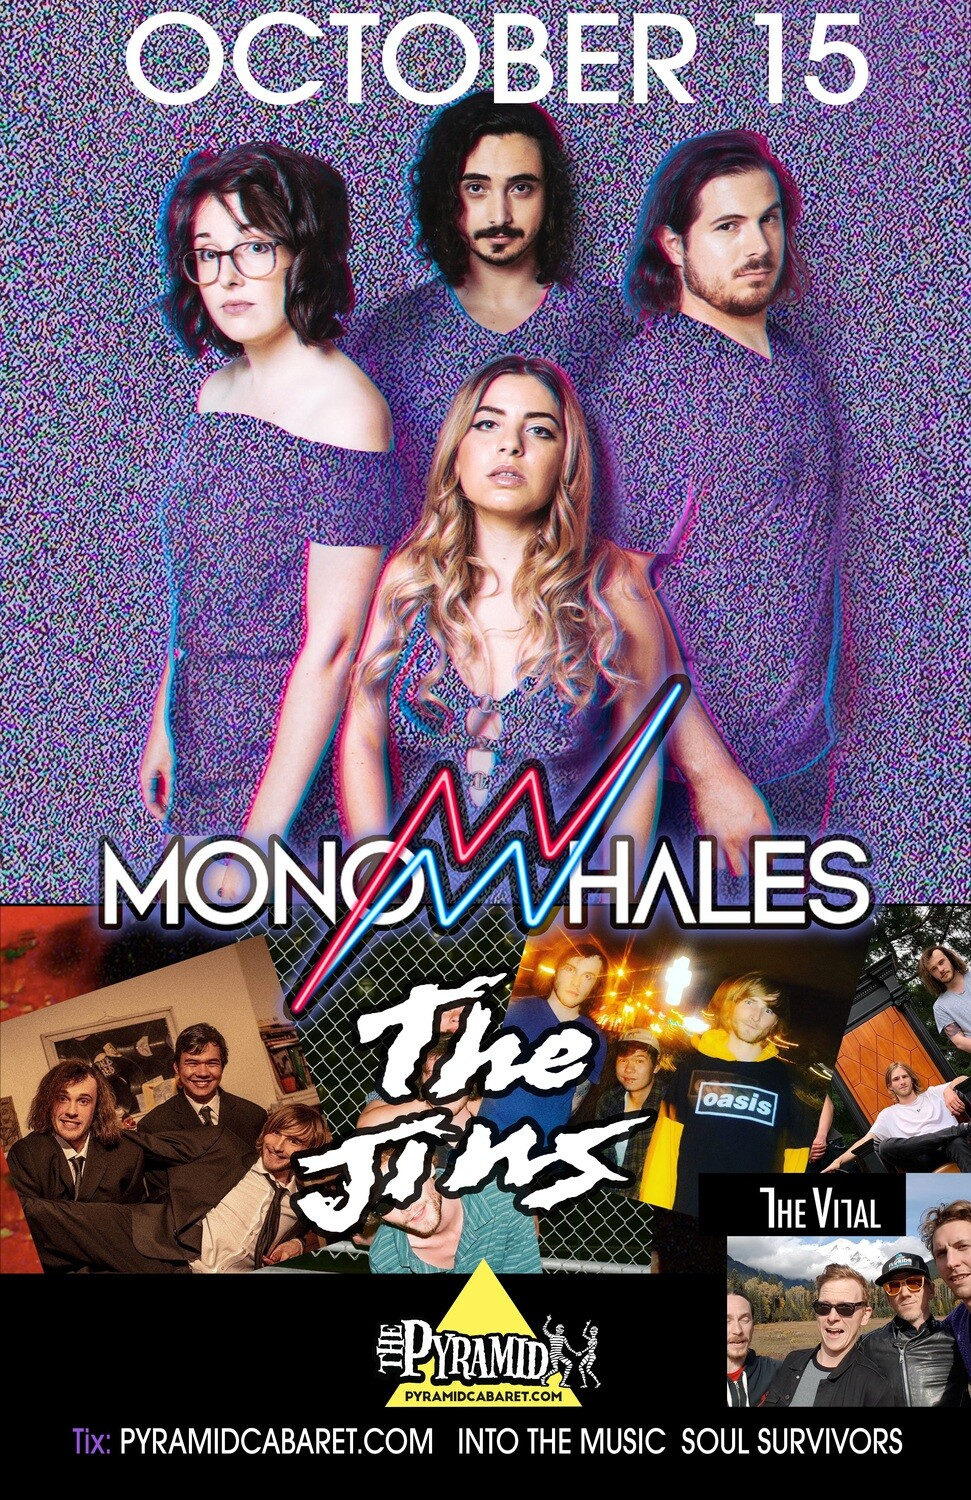 MONOWHALES w/ The Jins - OCT. 15 - The Pyramid